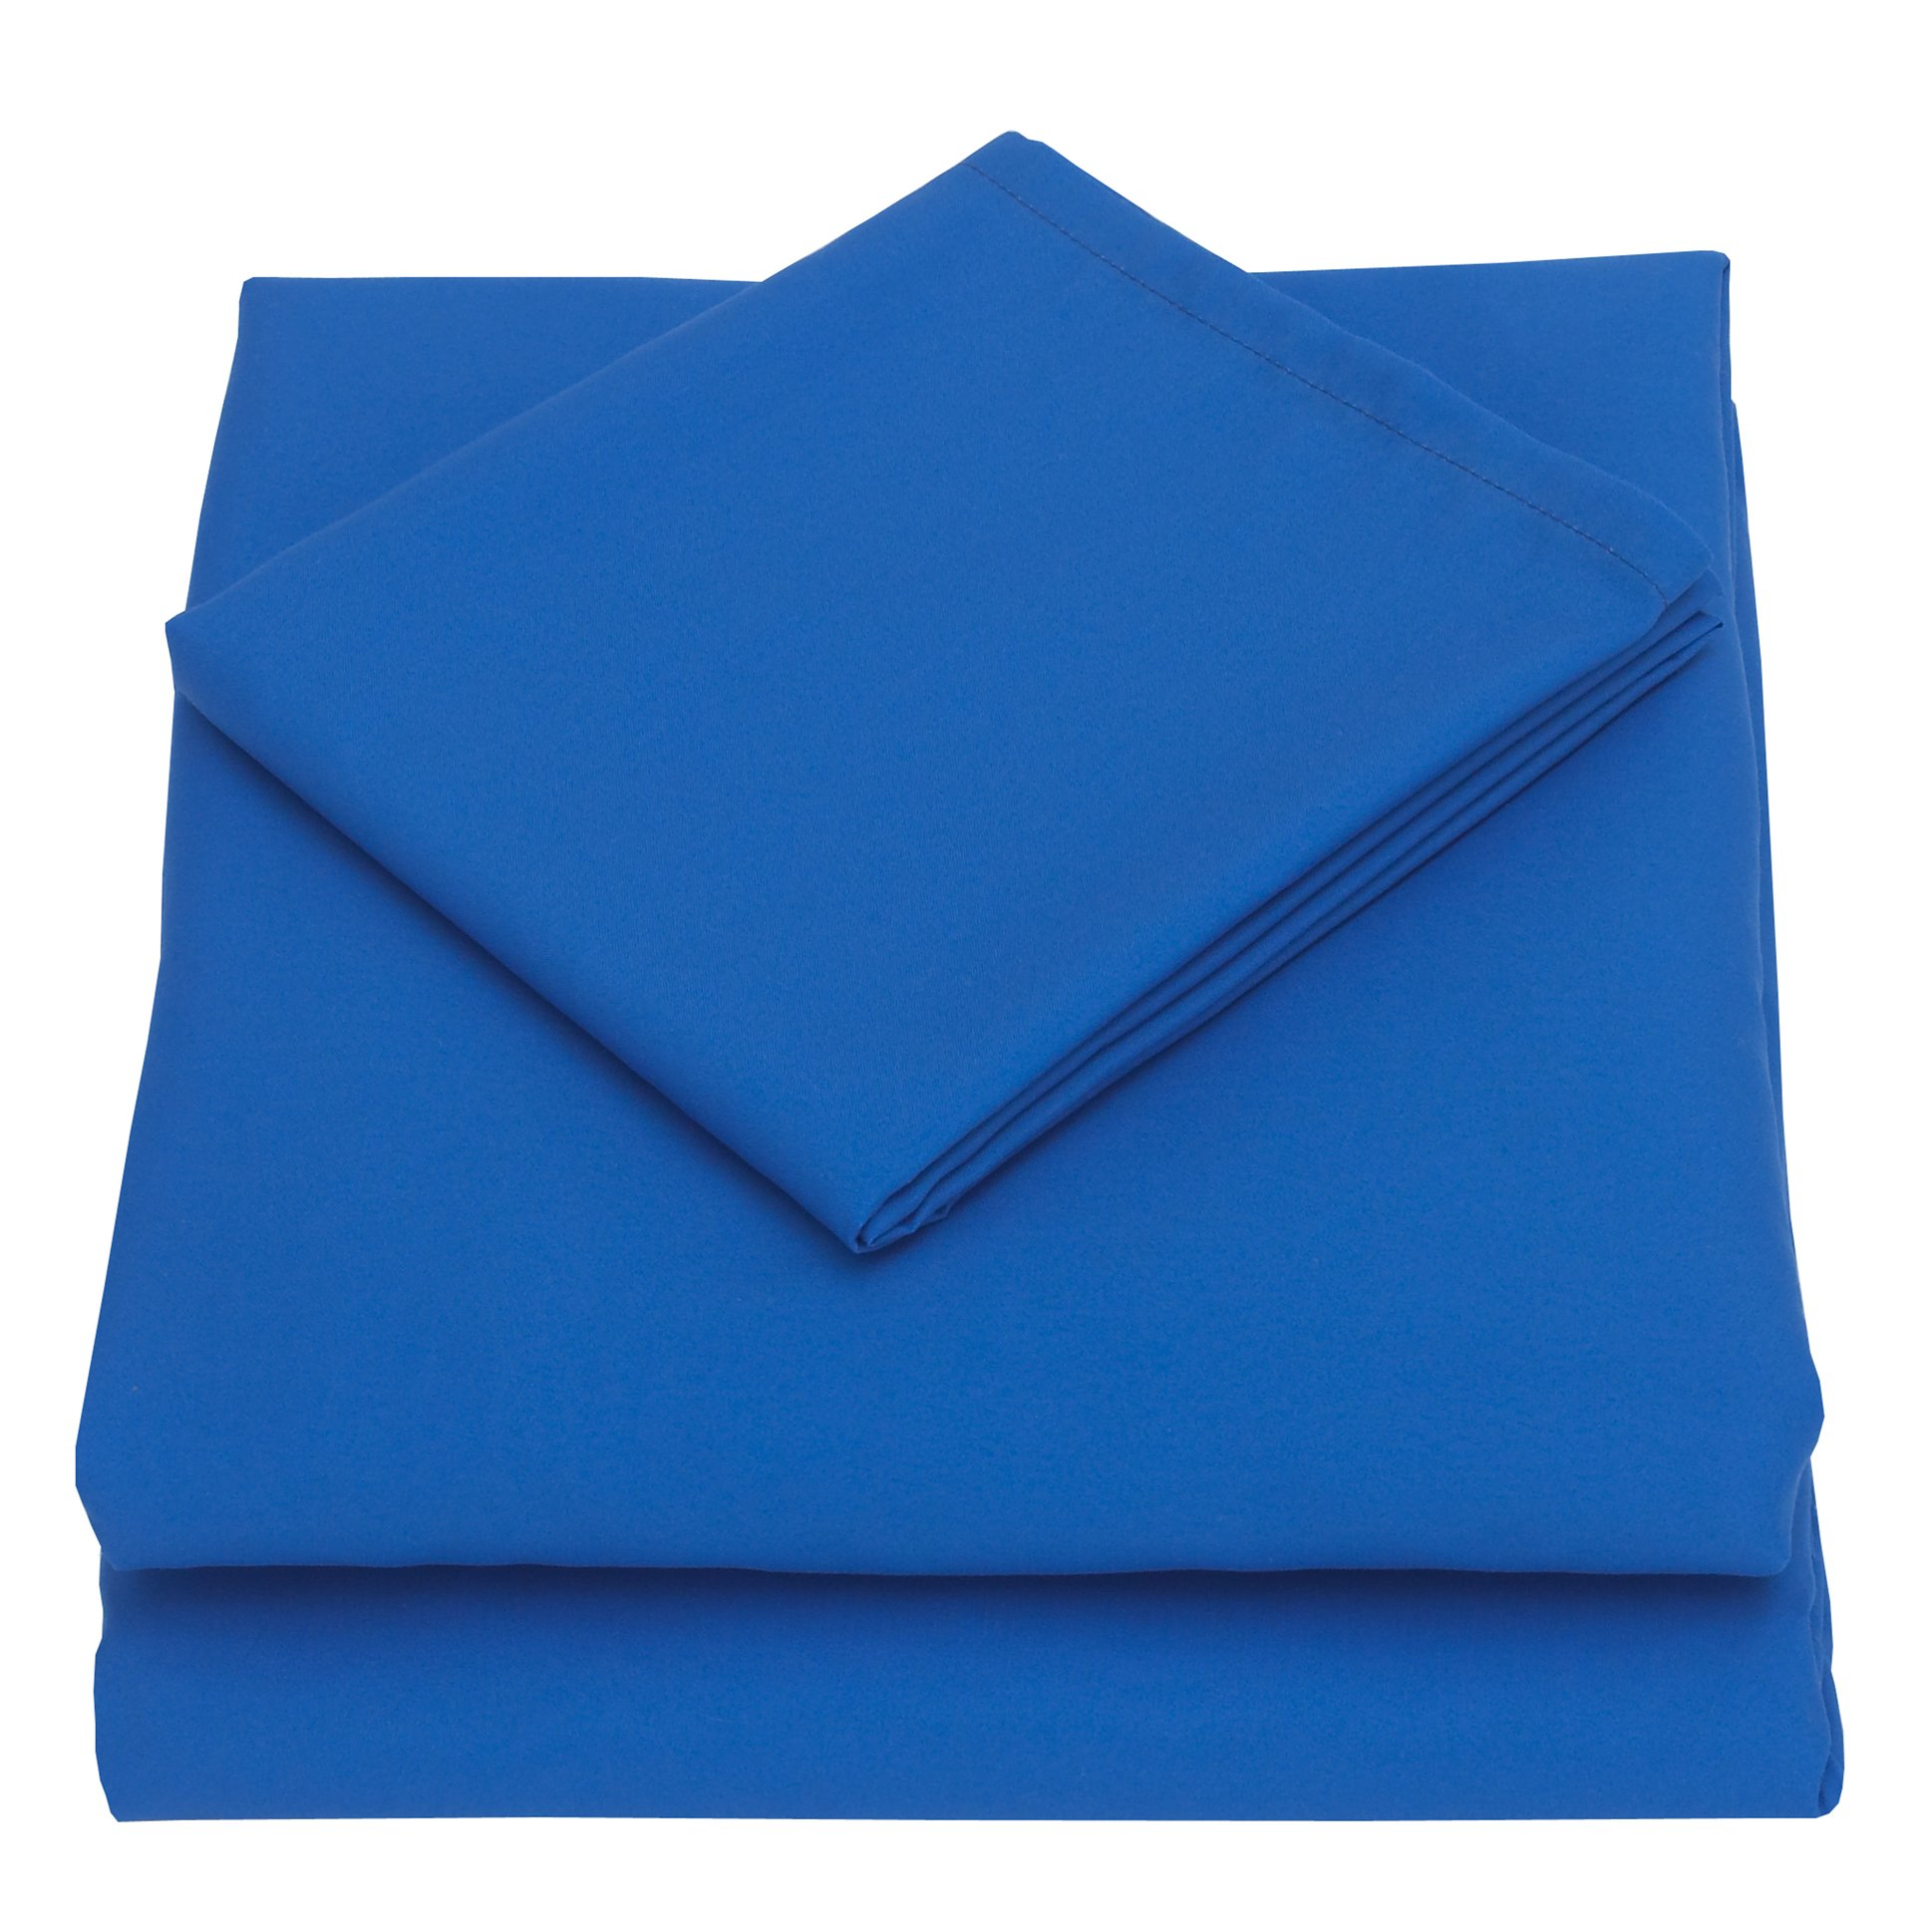 NoJo 3-Piece Toddler Sheet Set, Blue, 52'' x 28''